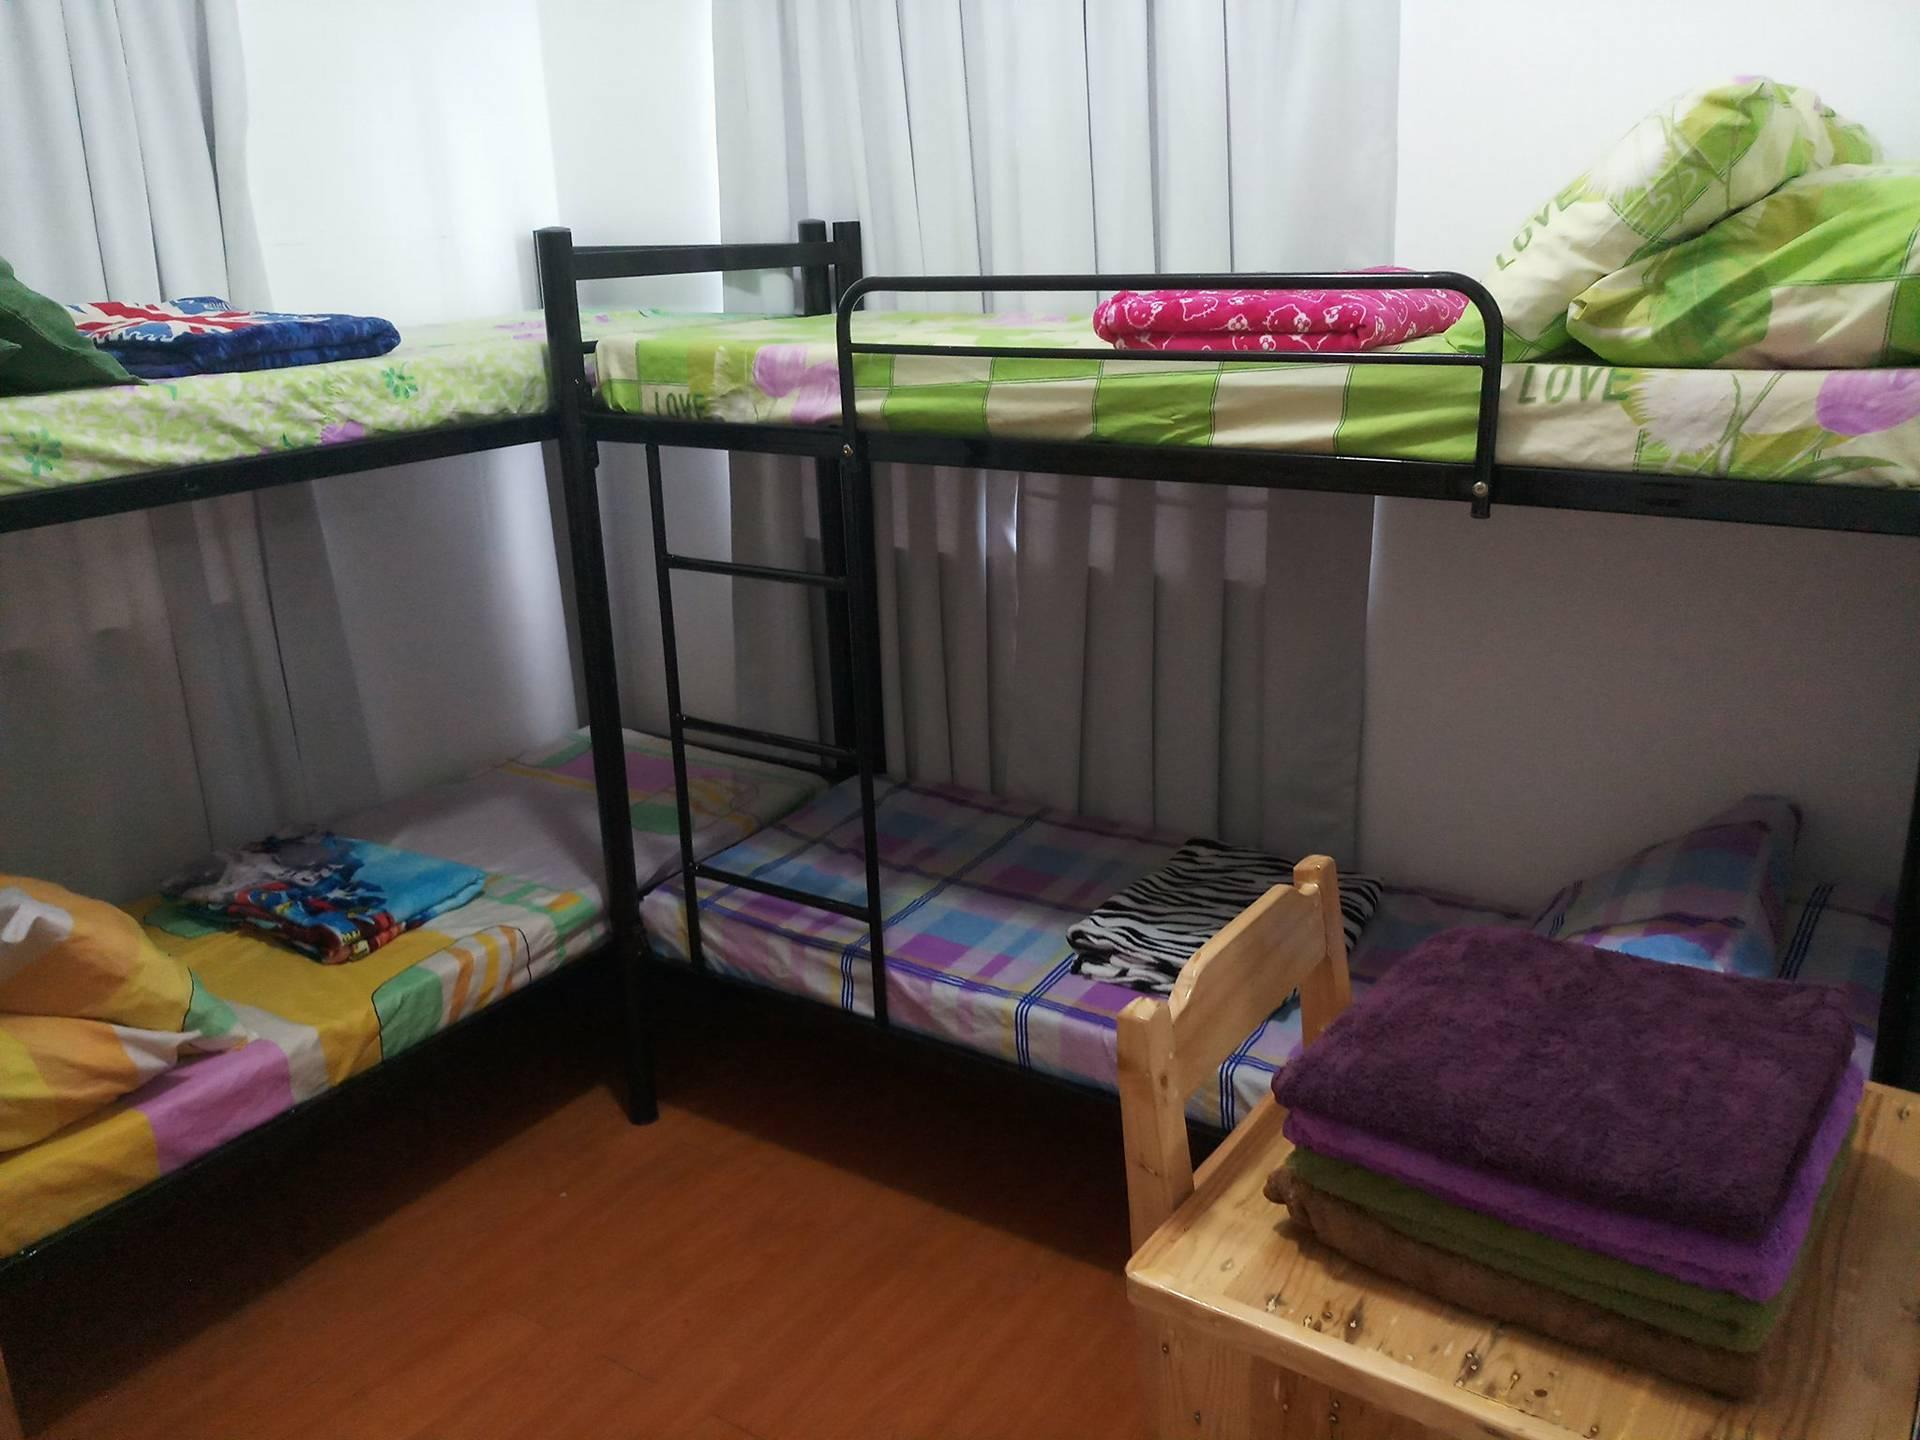 Condotel, House, Apartment, Place, Home, Budget